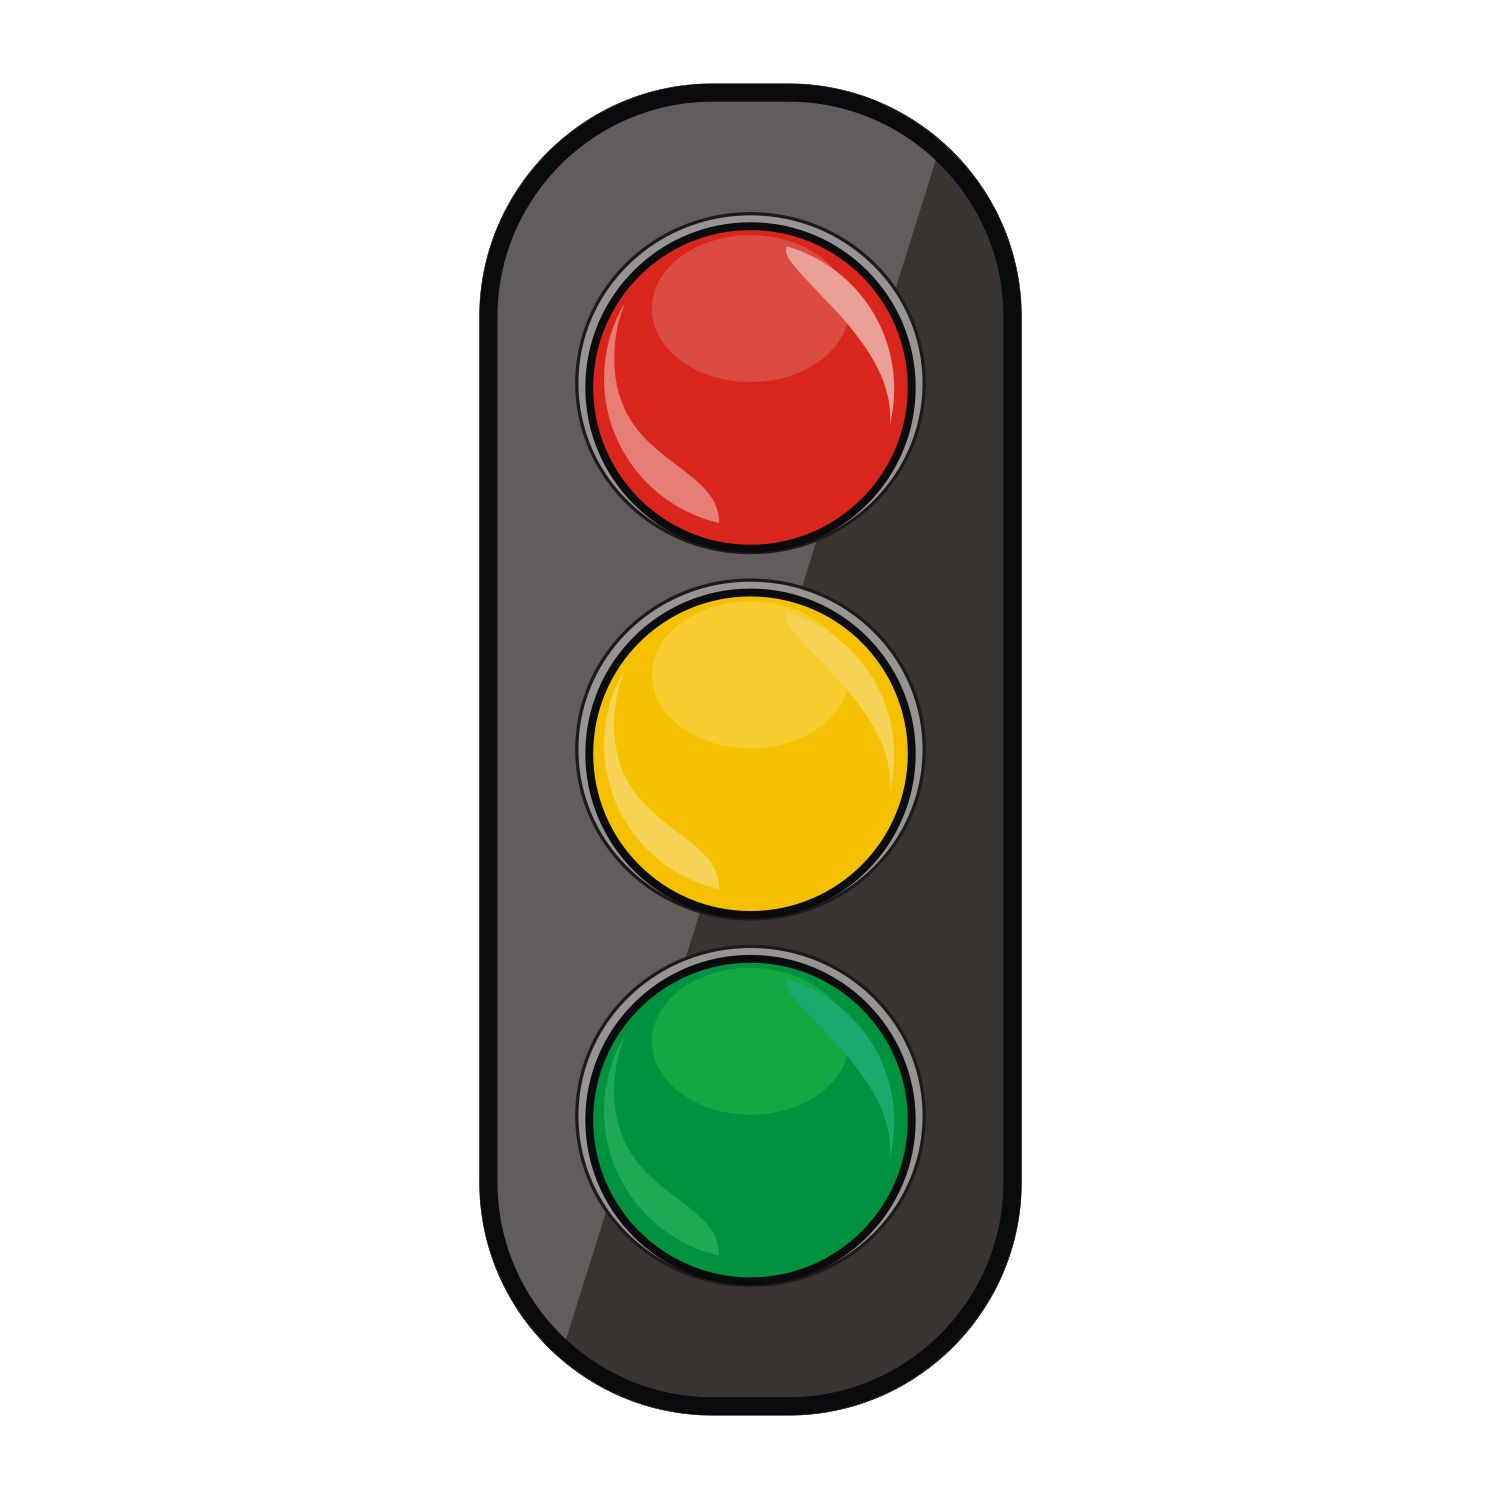 Png Traffic Lights - ClipArt Best